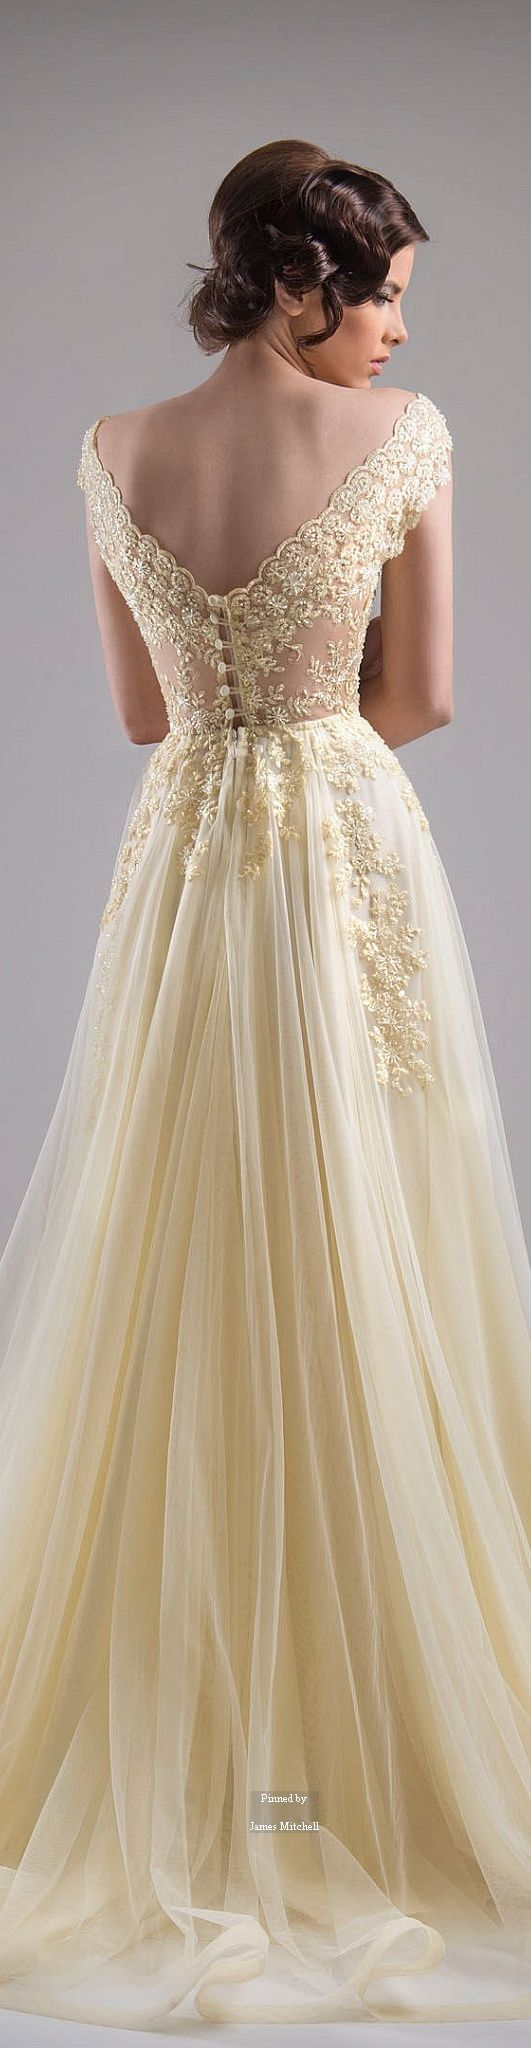 Chrystelle Atallah Couture Collection Spring-summer 2015 jαɢlαdy